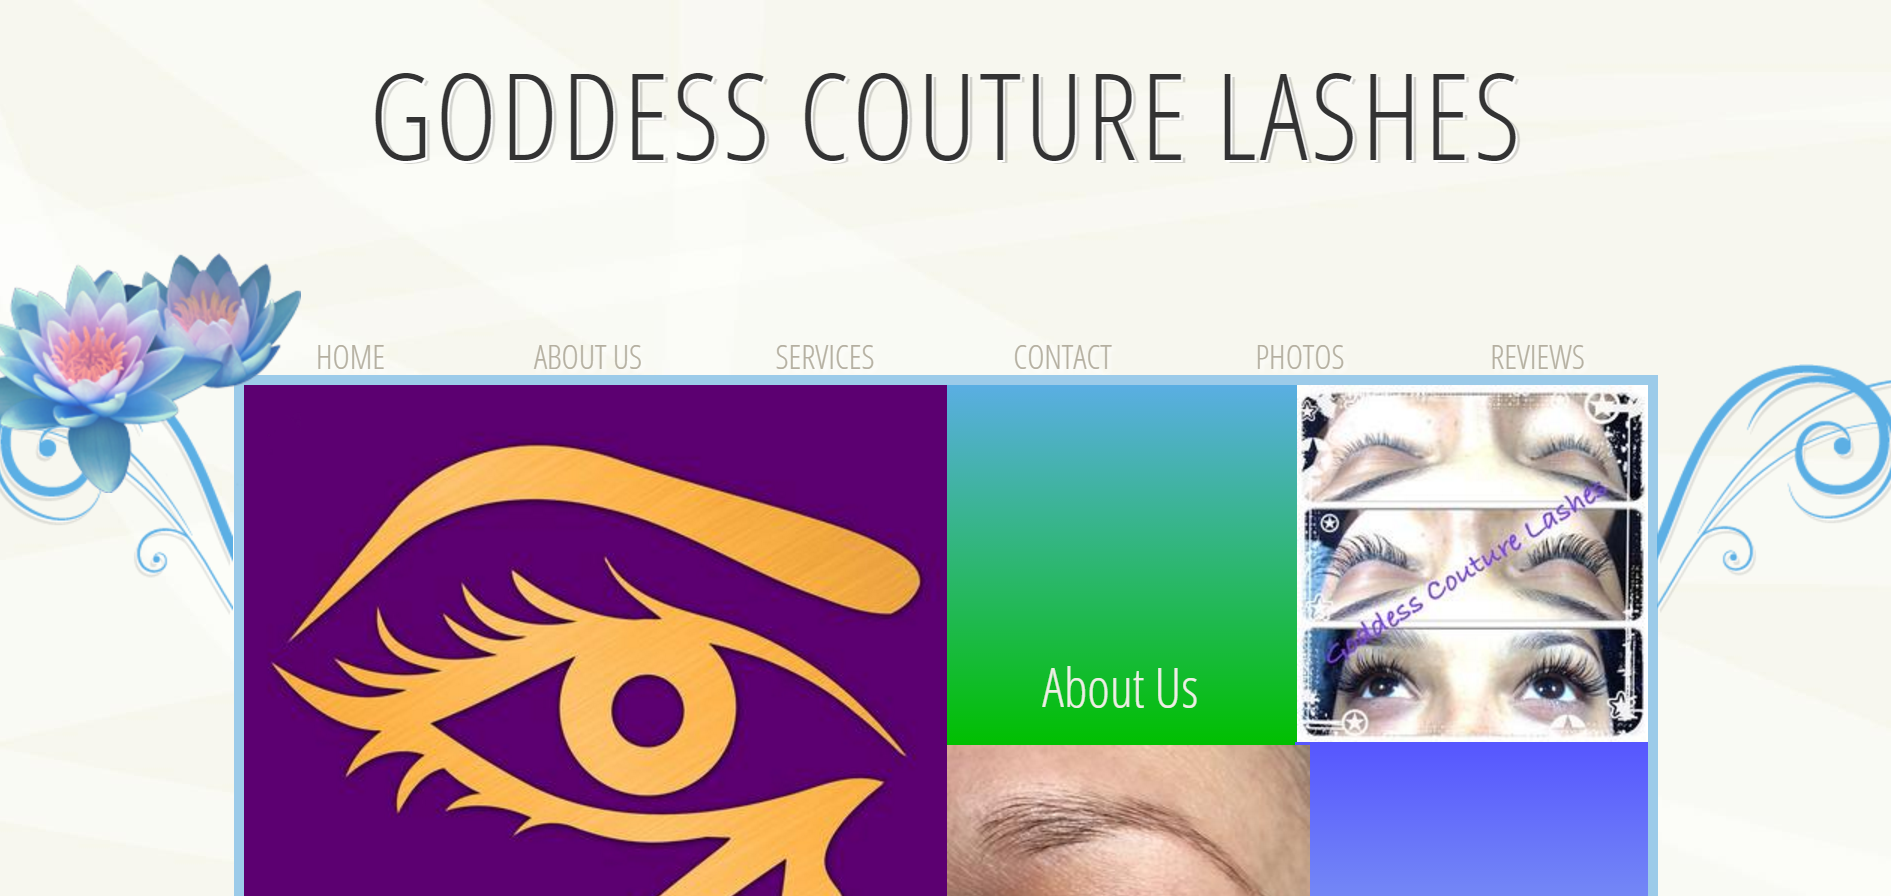 matt-anton-seo-goddess-couture-lashes